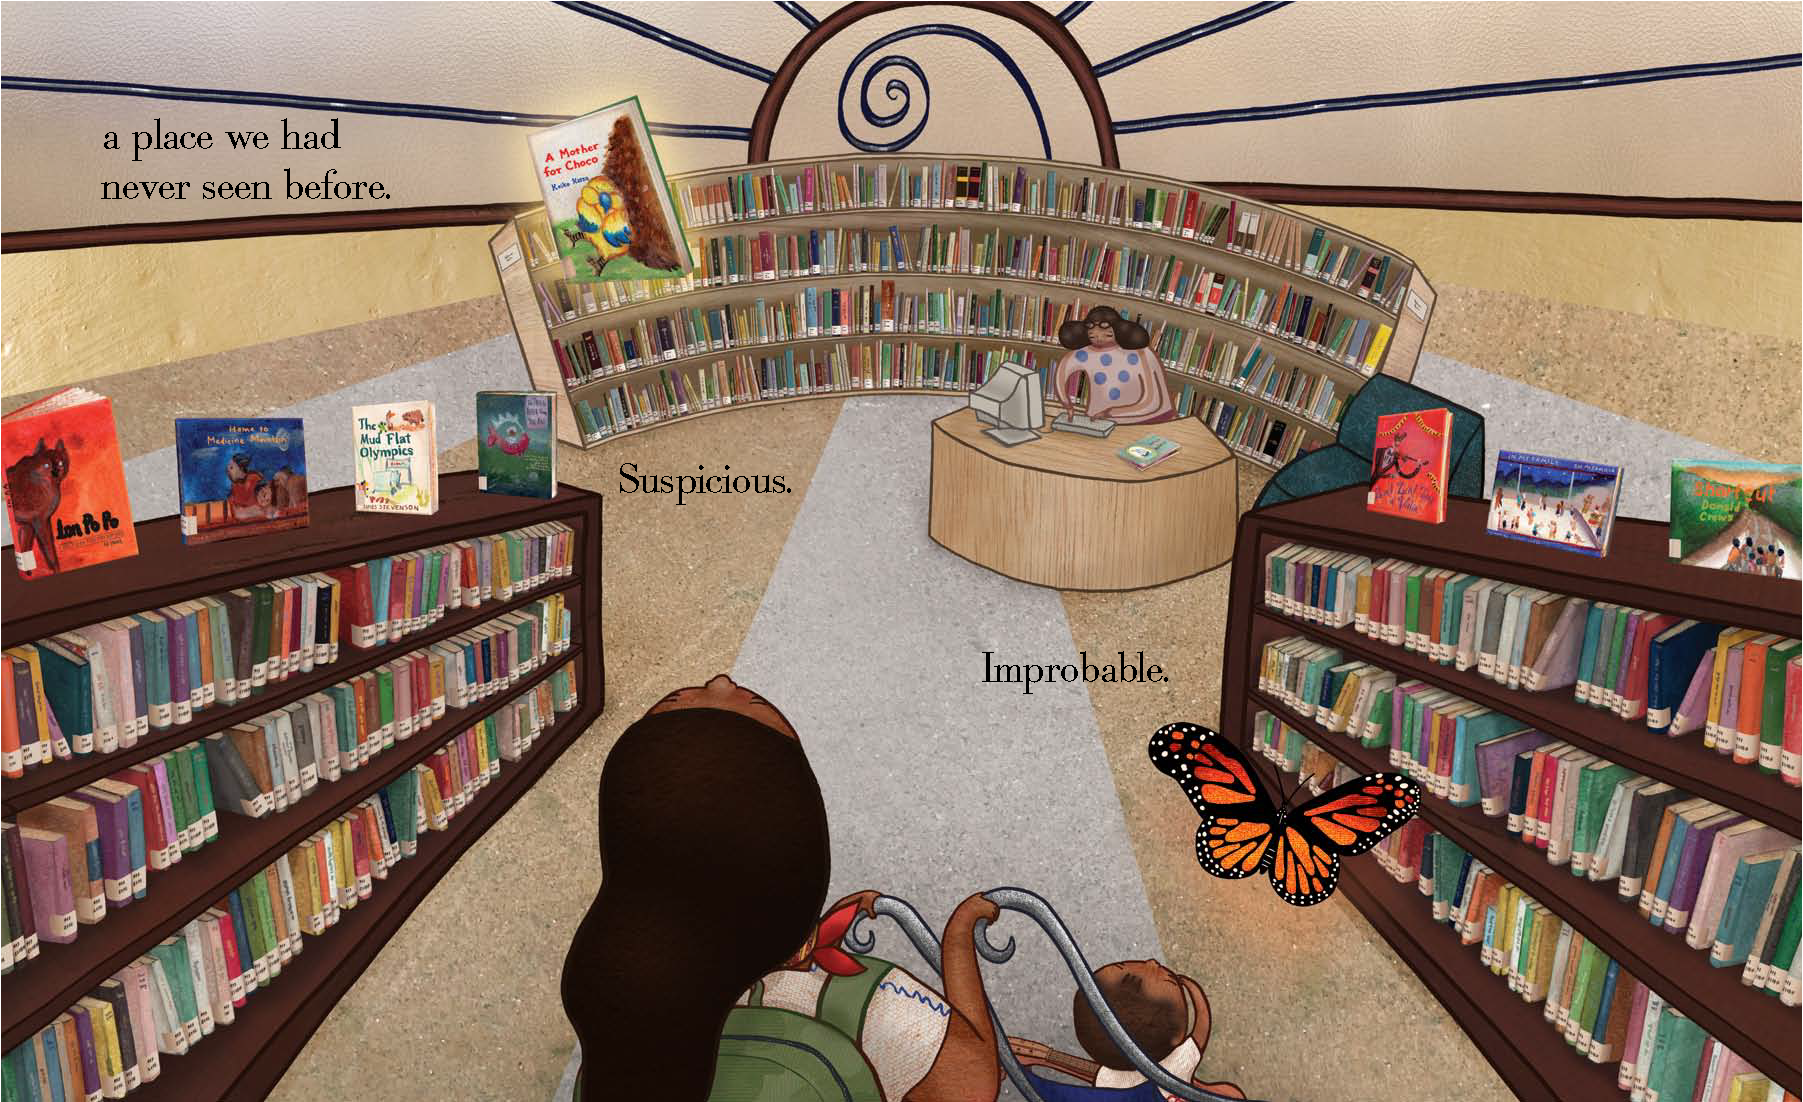 Dreamers_Interior_02.png